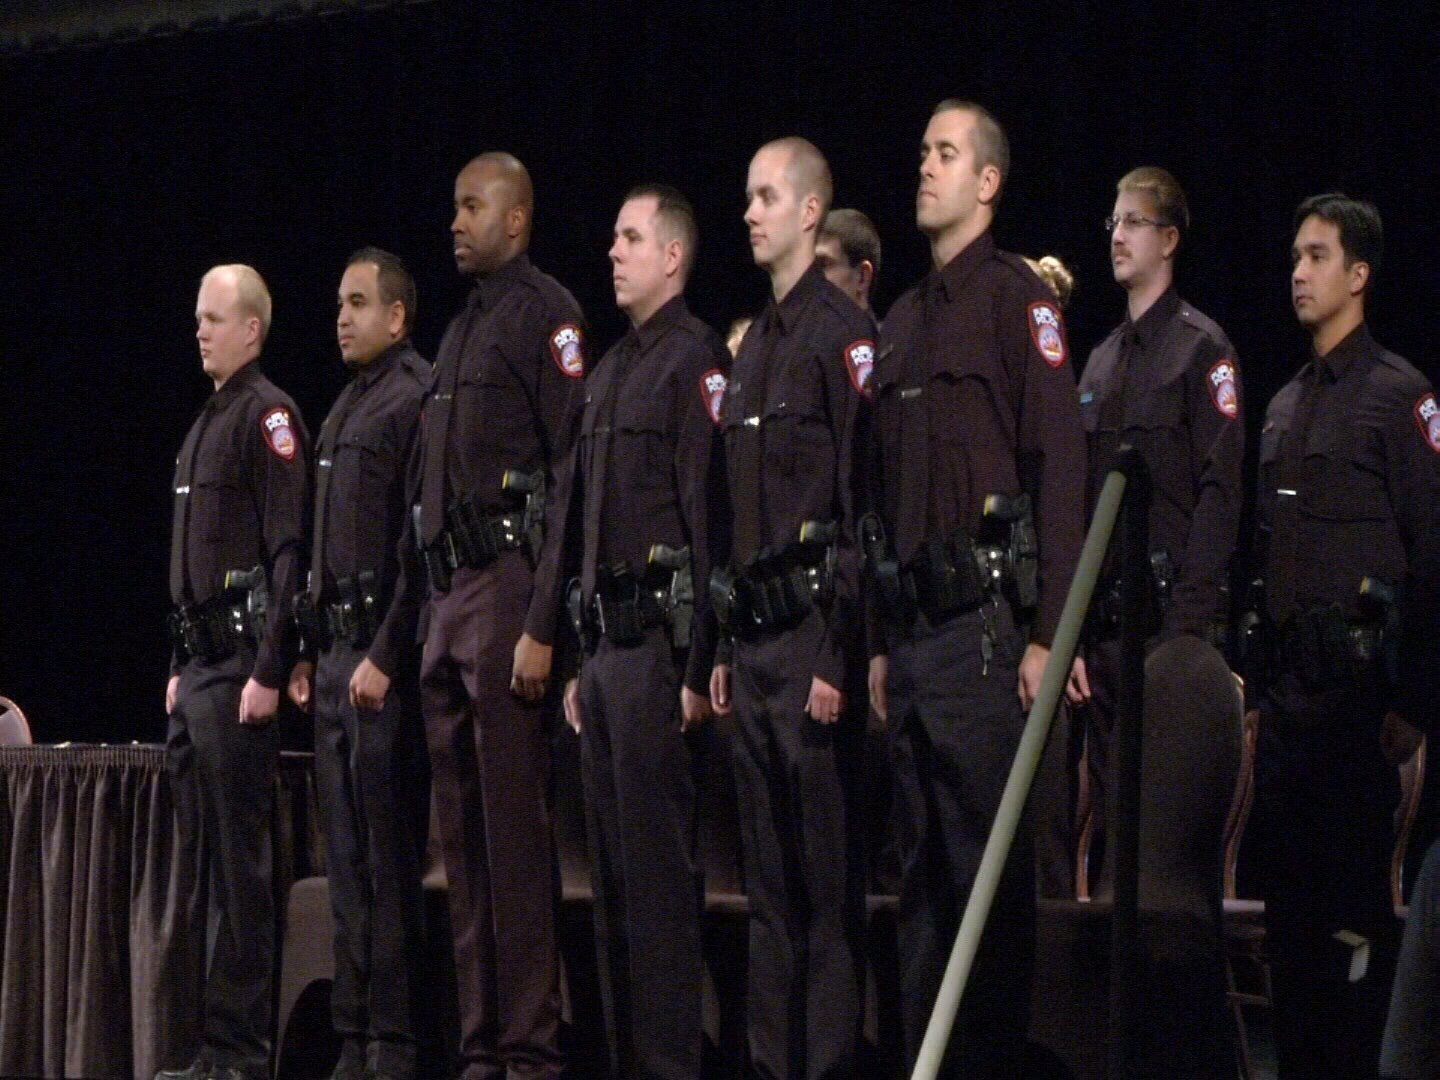 Pueblo's police academy will be busy after voters approved a sales tax increase to pay for an addition of 24 new officers to the force. File image of Pueblo Police Graduation Ceremony